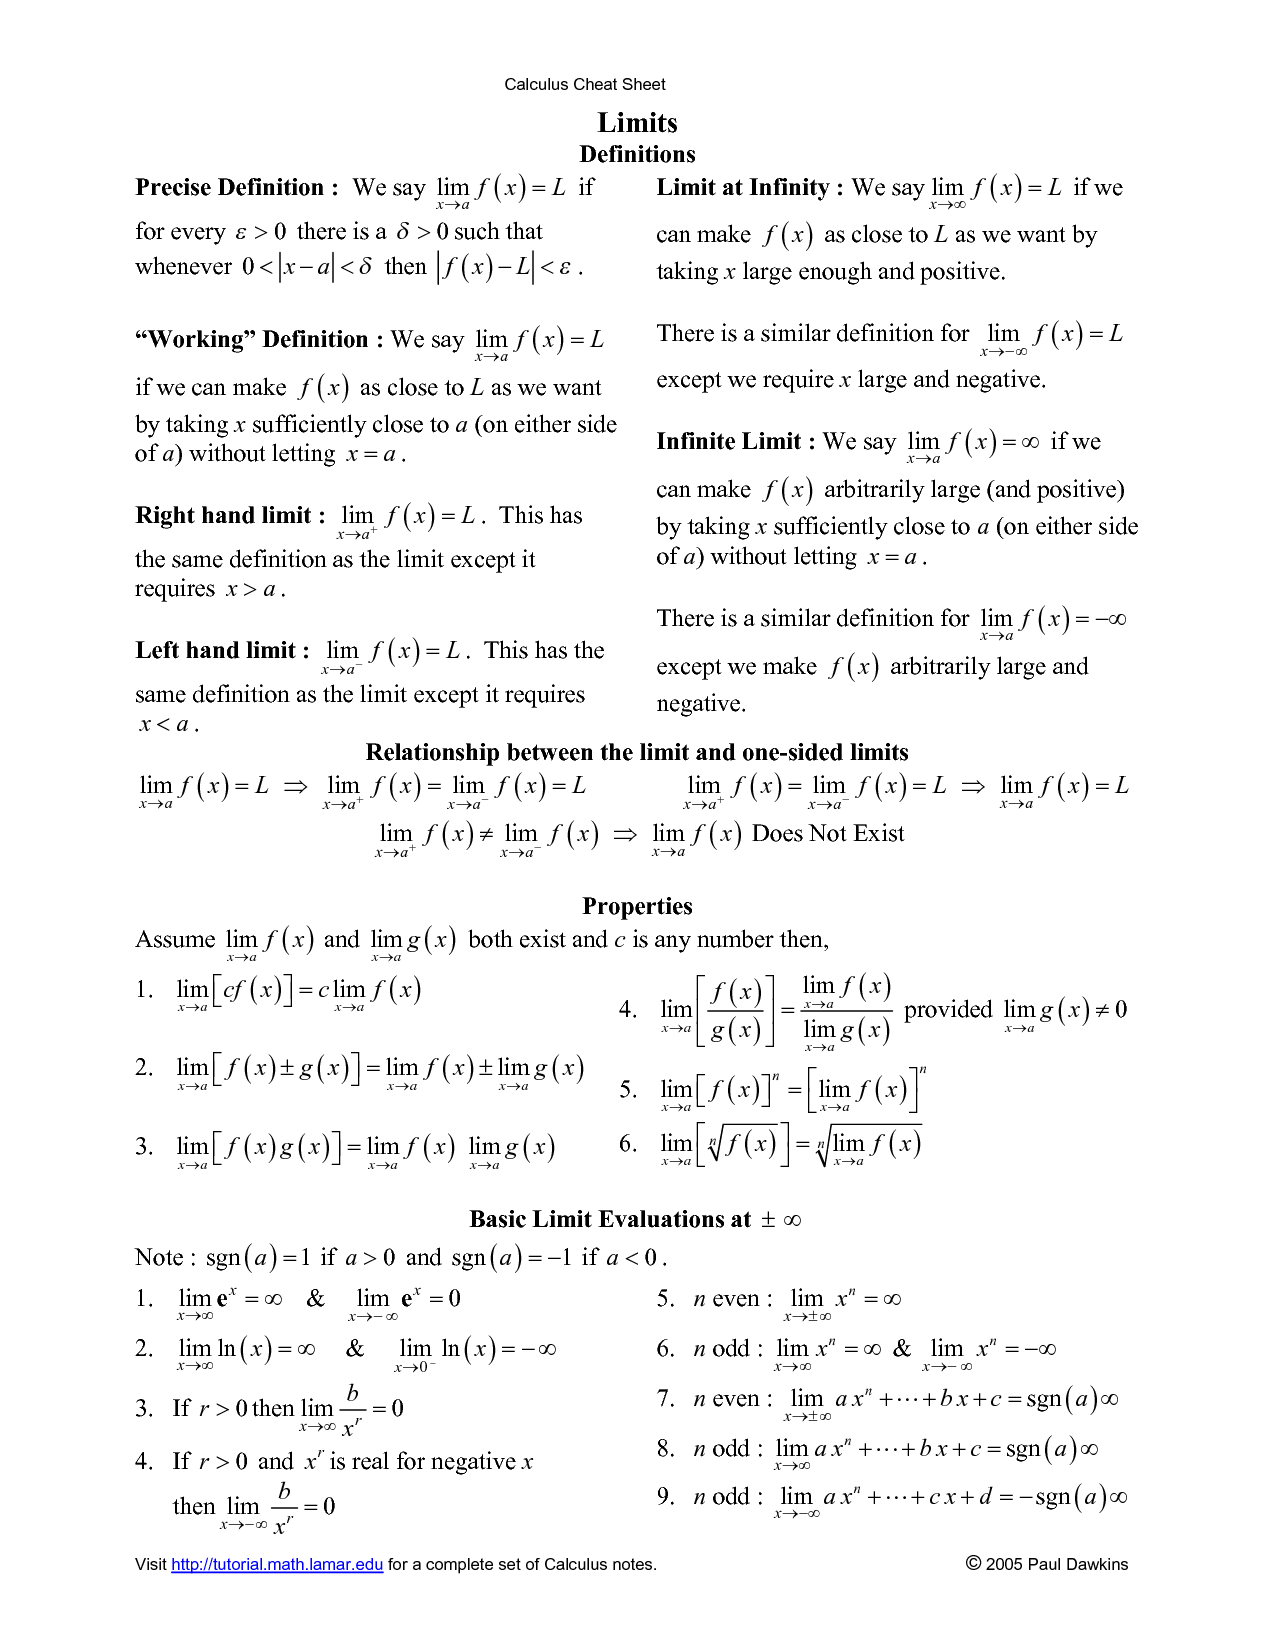 Worksheets Grade 12 Work Sheet On Limit And Continity calculus cheat sheet google search school pinterest search